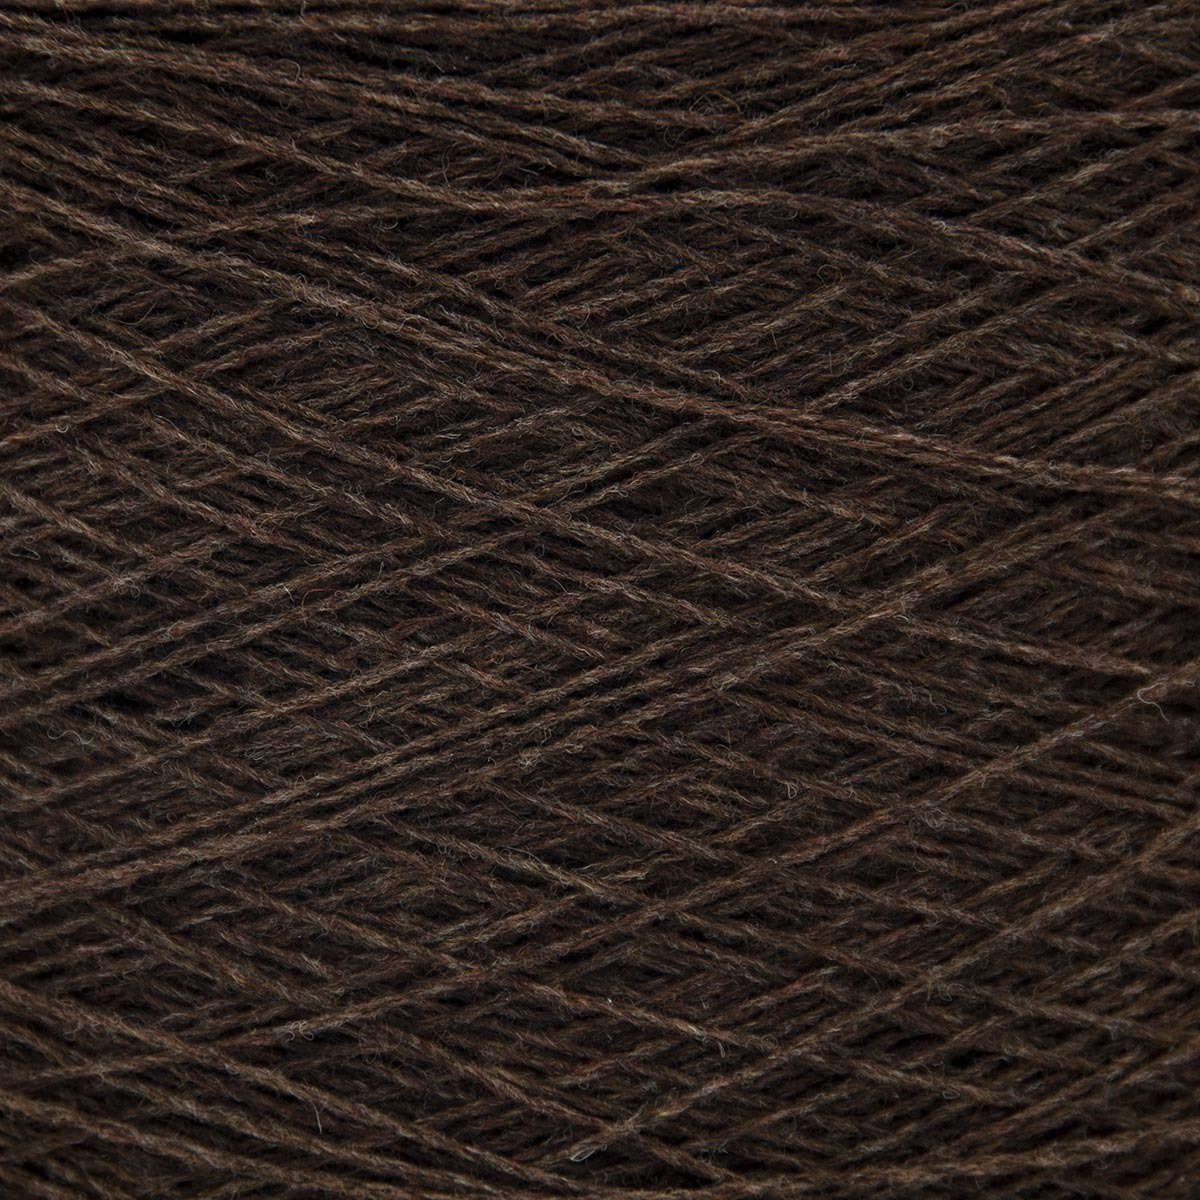 Knoll Yarns Lambswool - 242